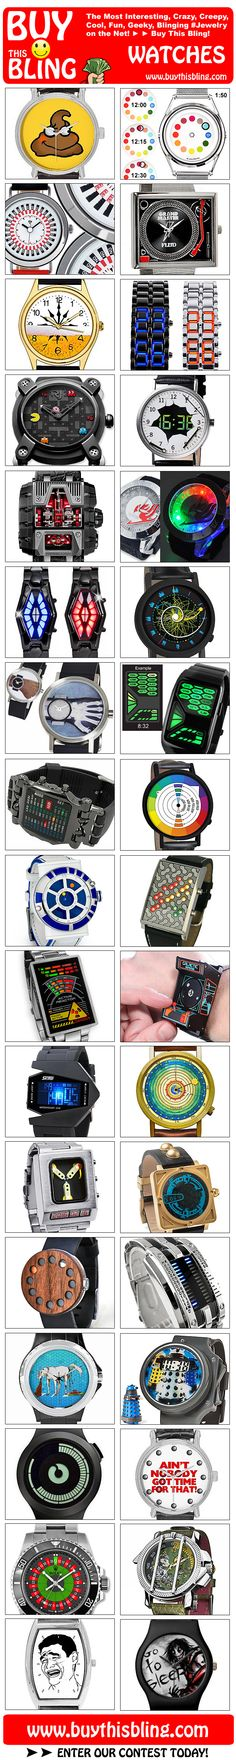 Bling Bling Watches from Buy This Bling!